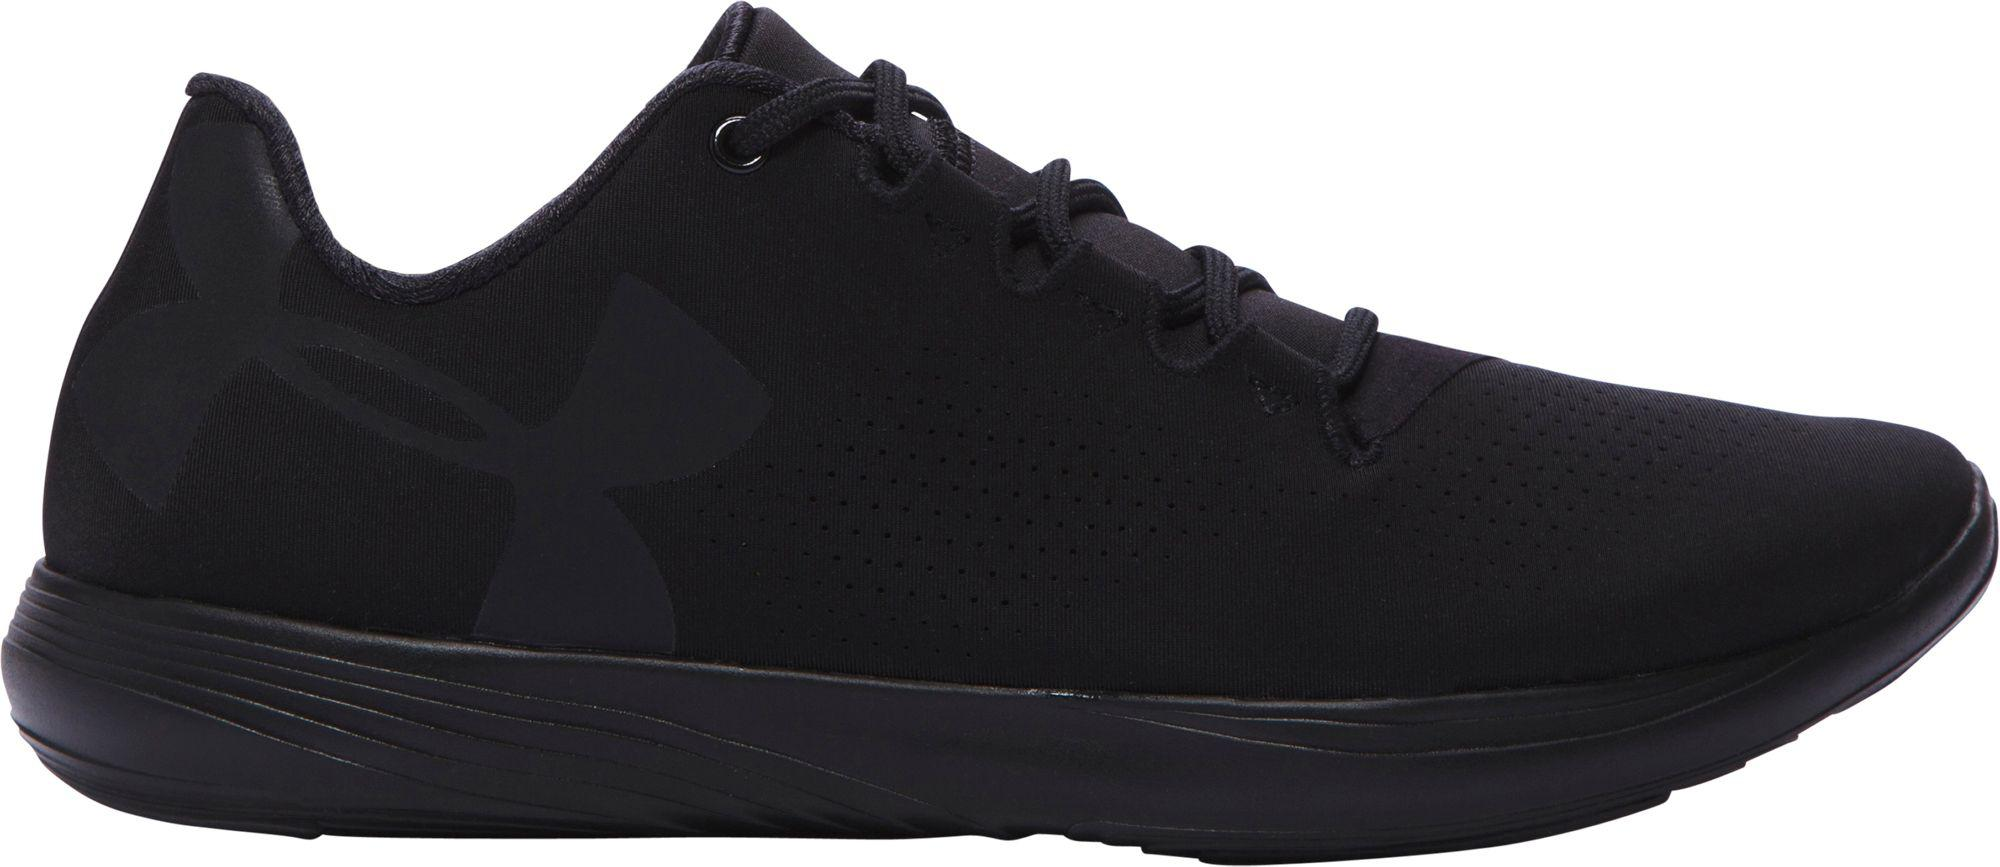 c8c2dcbd1a0ed9 Under Armour Street Precision Low Casual Shoes in Black for Men - Lyst